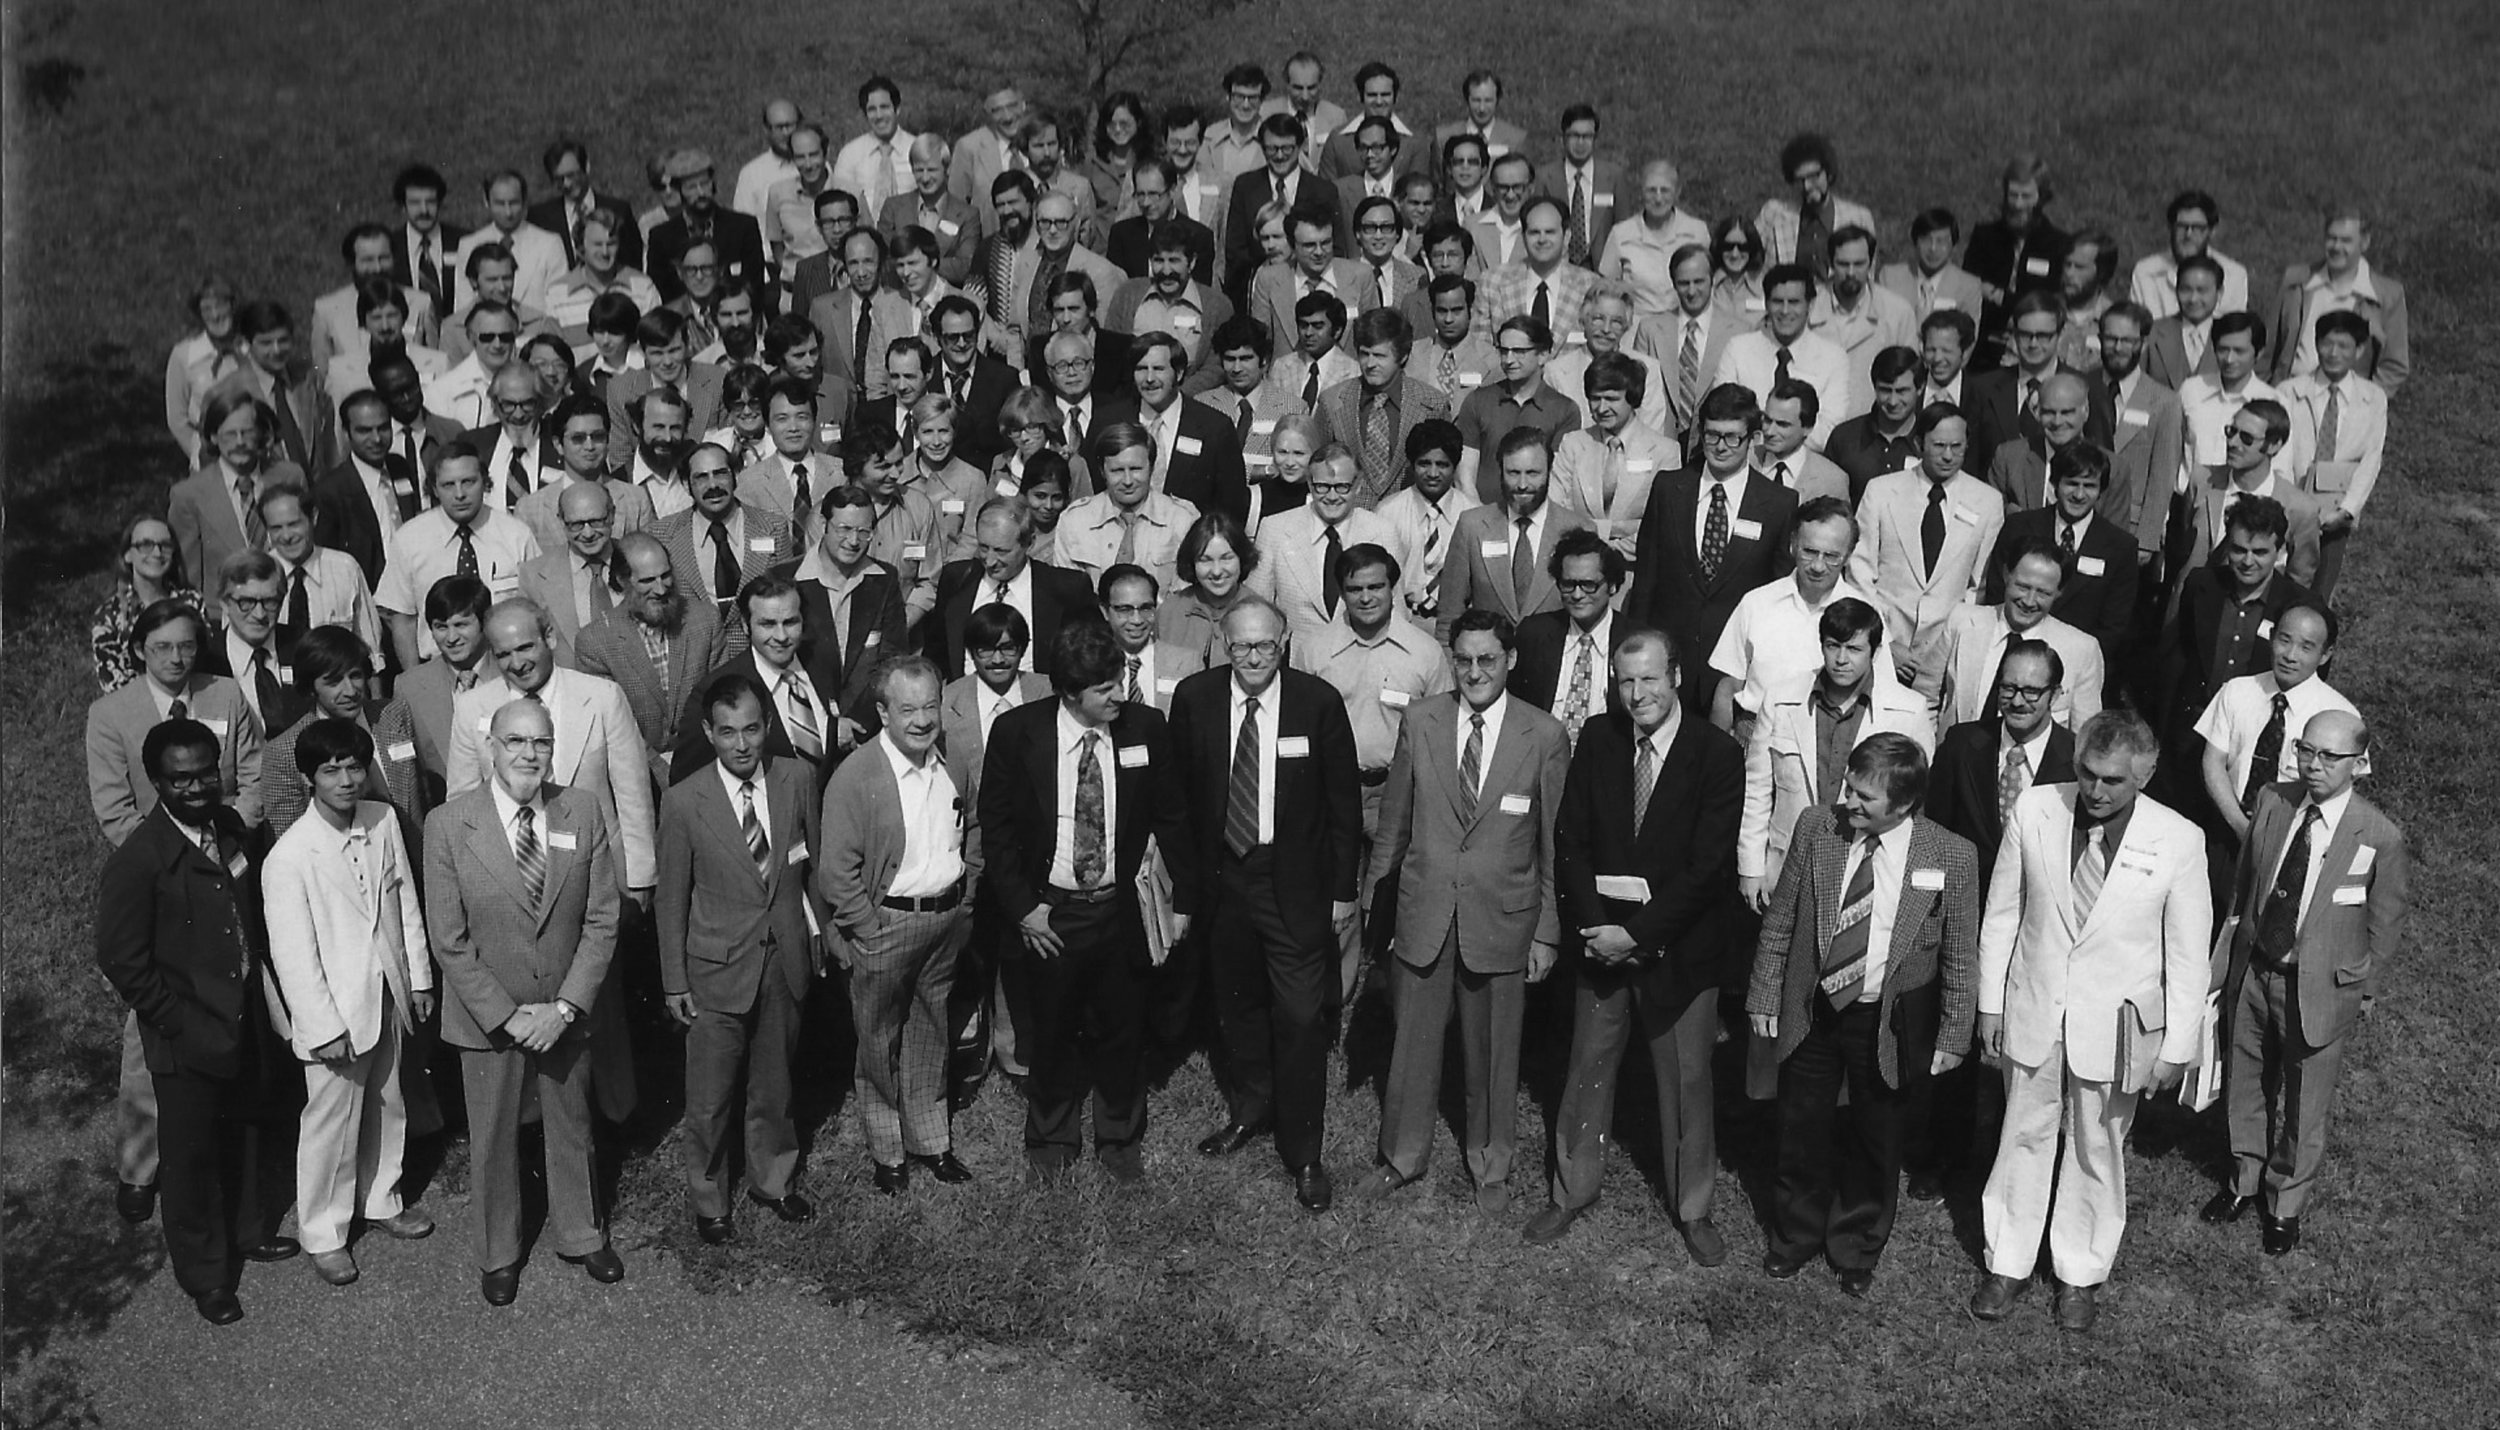 The first International Symposium on Radiopharmaceutical Chemistry in Brookhaven, 1976.